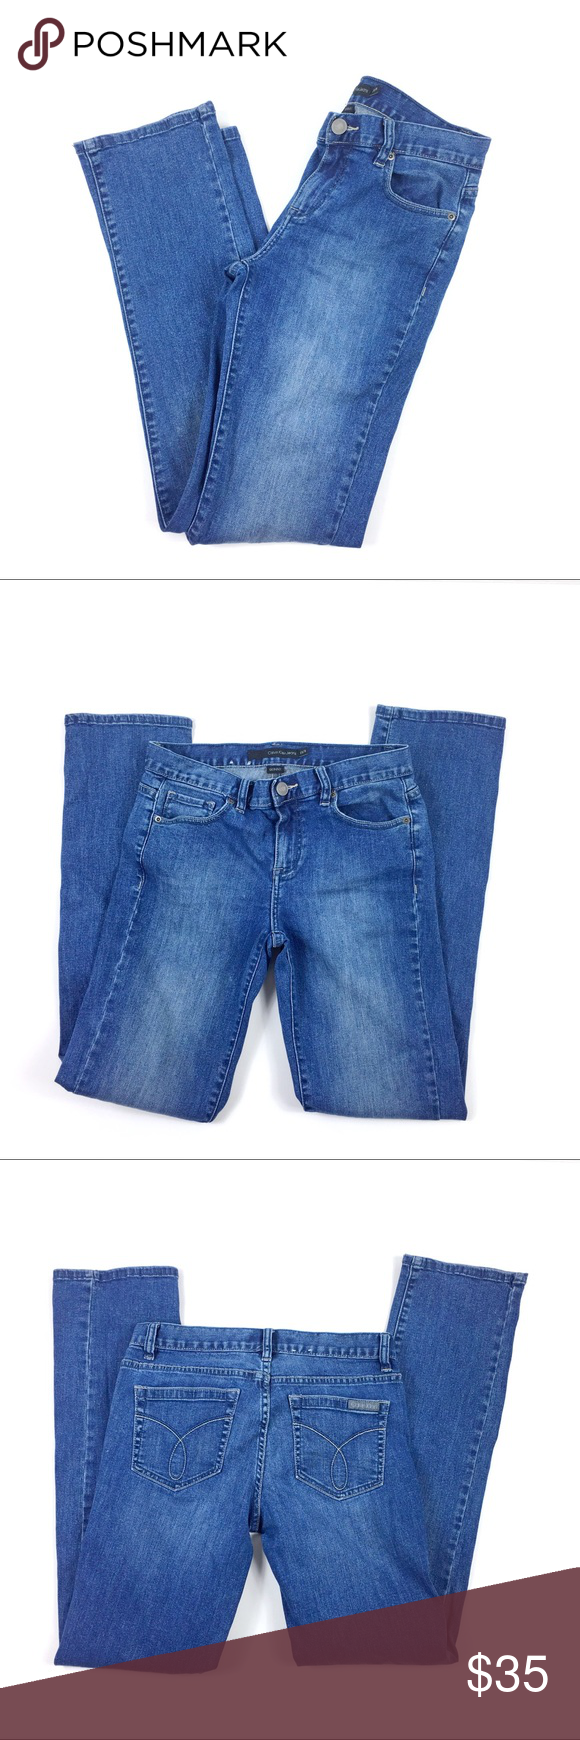 5 Sale Calvin Klein Mid Rise Skinny Jeans Mid Rise Skinny Jeans Clothes Design Fashion Trends